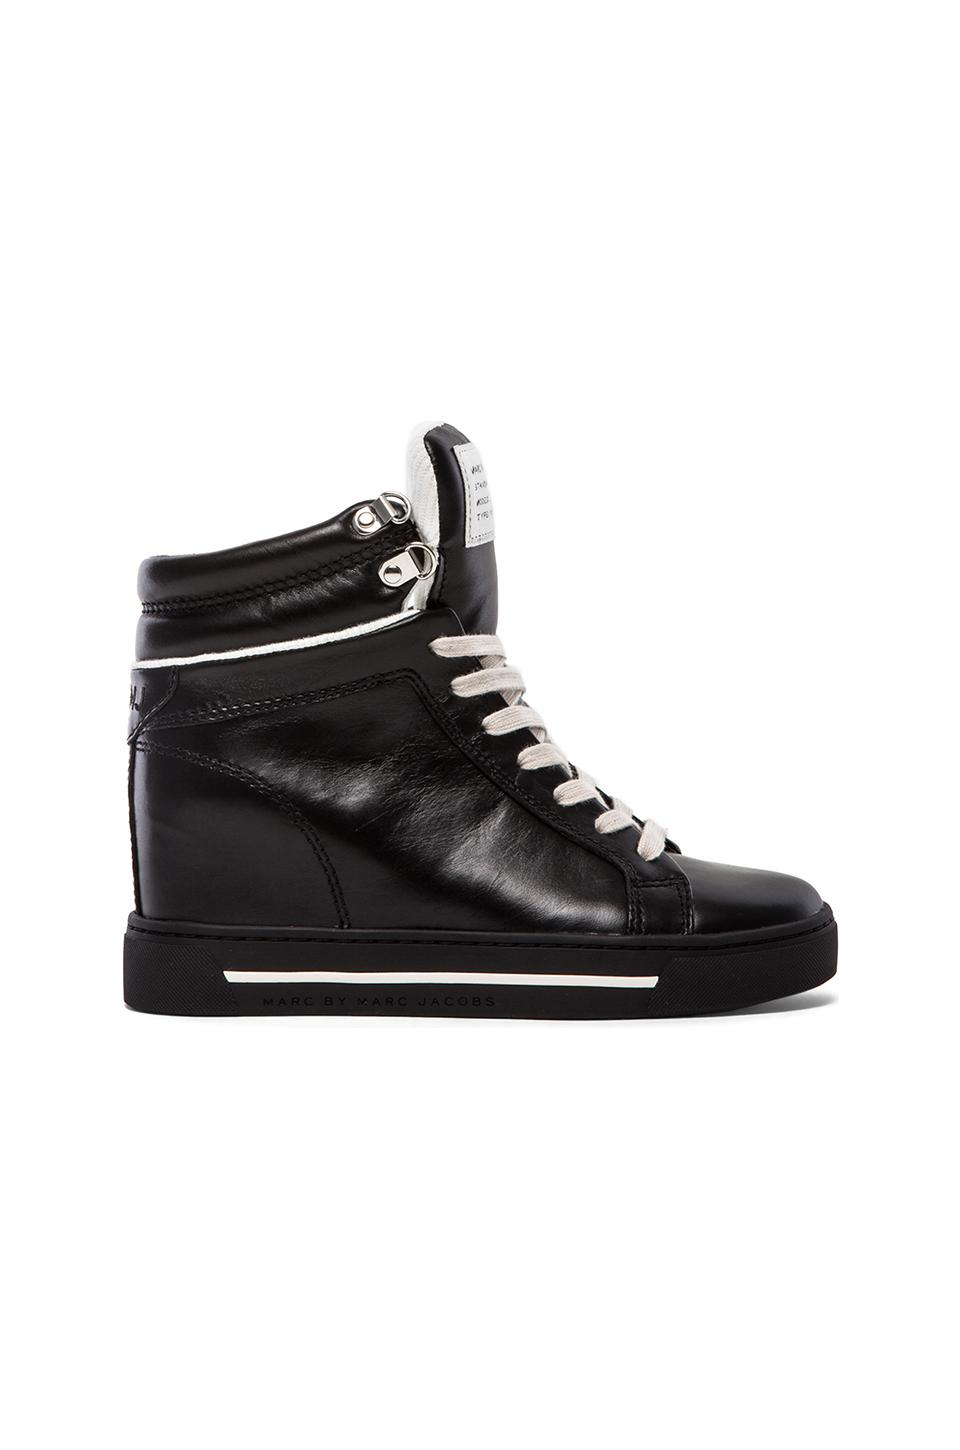 Marc by Marc Jacobs Cute Kicks Sneaker Wedge in Black